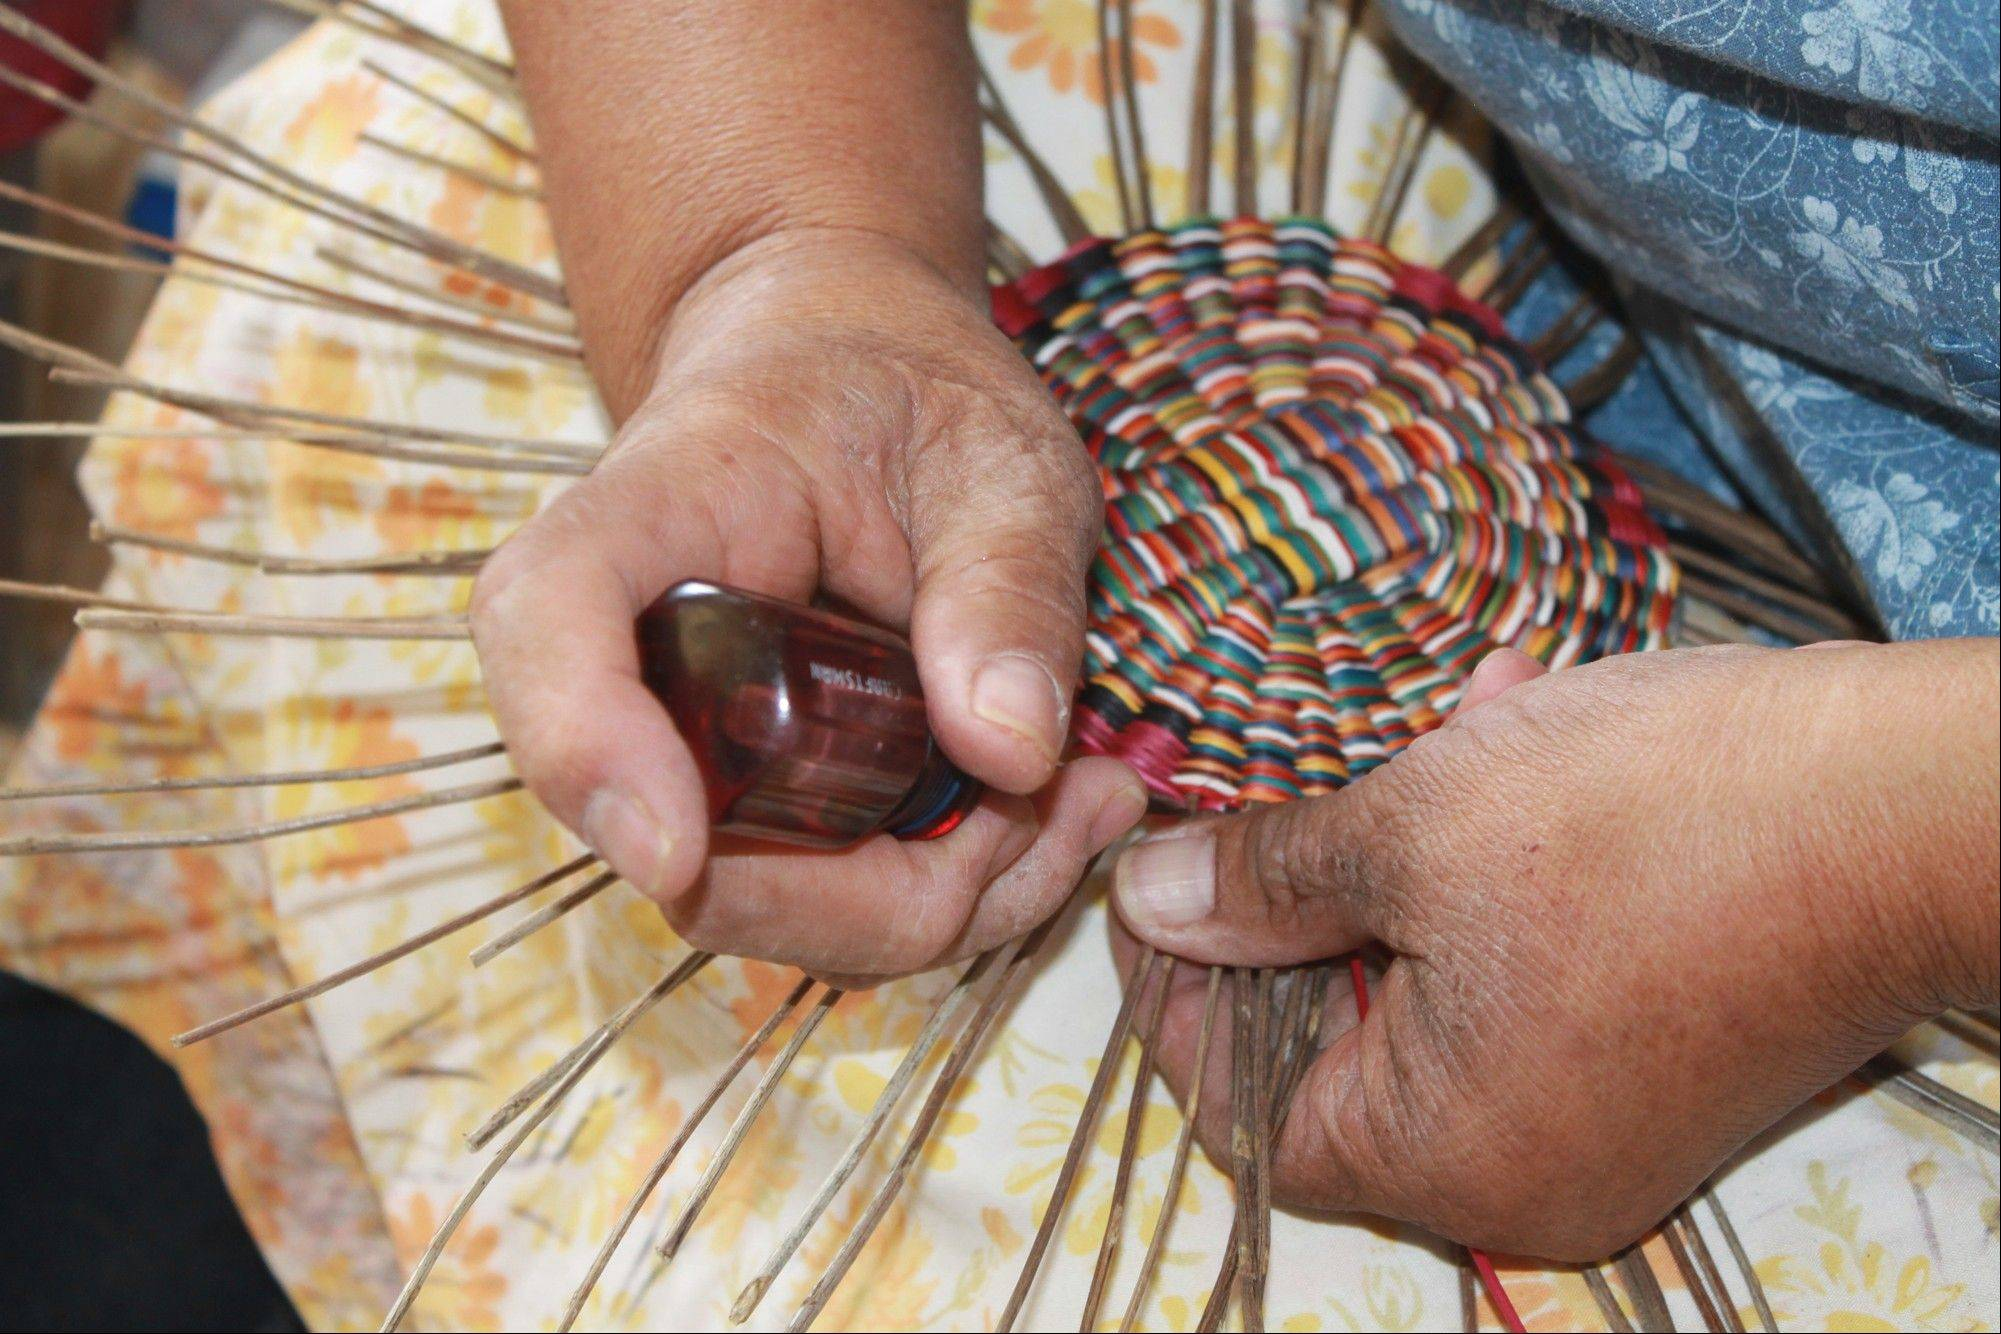 """The Hopi Way: A Week on the Reservation"" includes photos of Native American artwork and crafts."